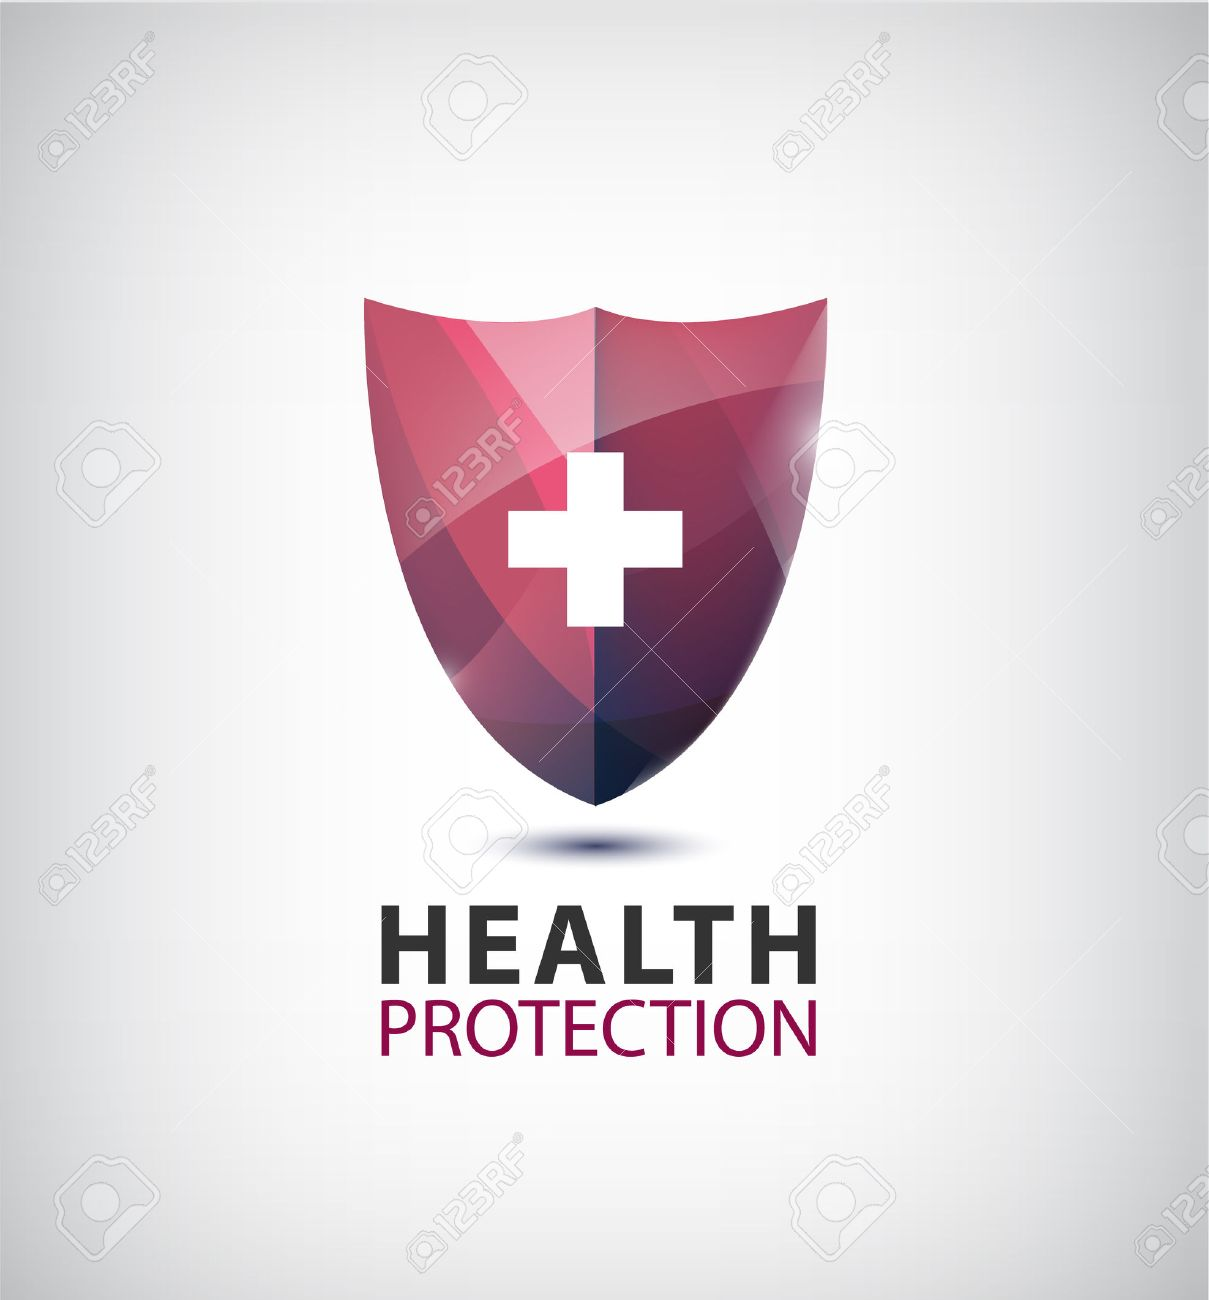 Vector medical logo, health protection logo, shield with cross isolated. - 51517055